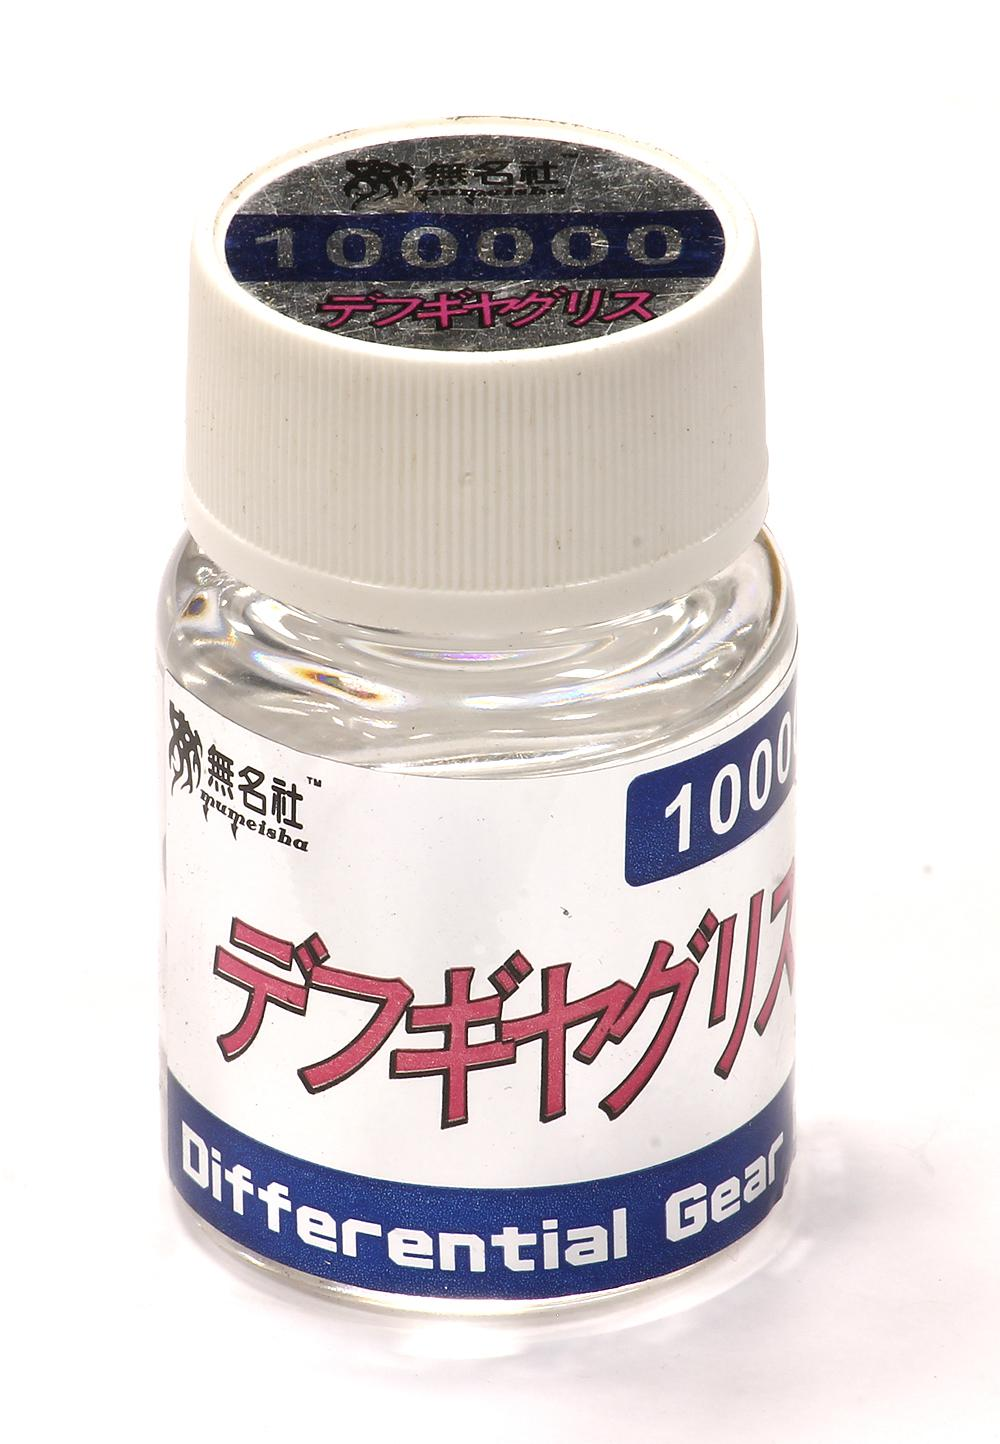 Silicone Differential Fluid (100, 000cst) for On-Road & Off-Road by Mumeisha